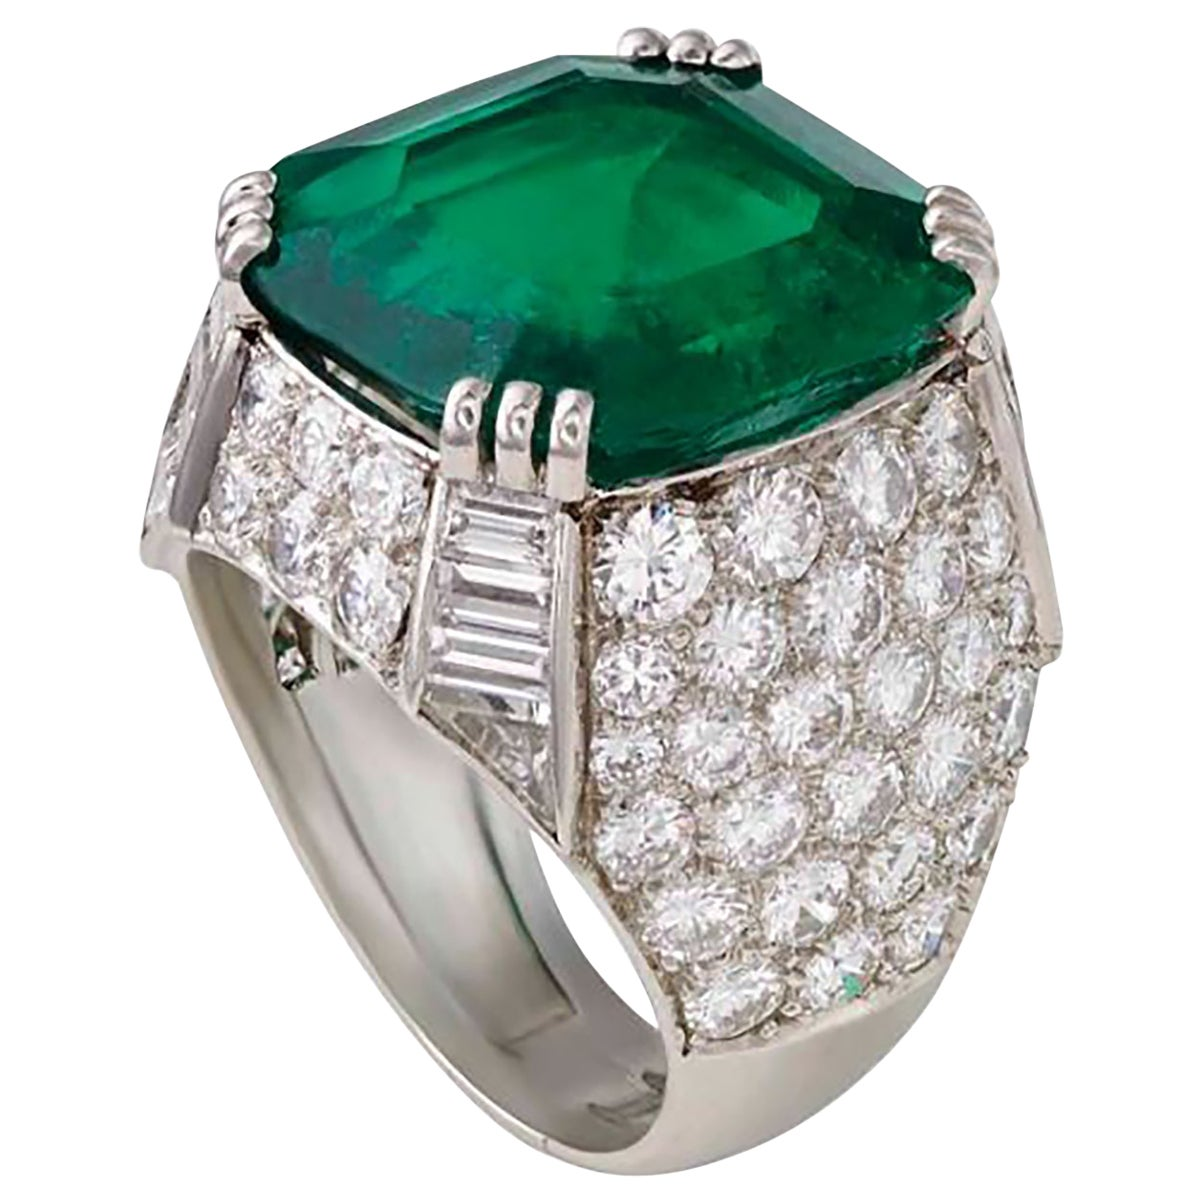 AGL Certified 11.38 Carat Colombian Emerald Cocktail Ring